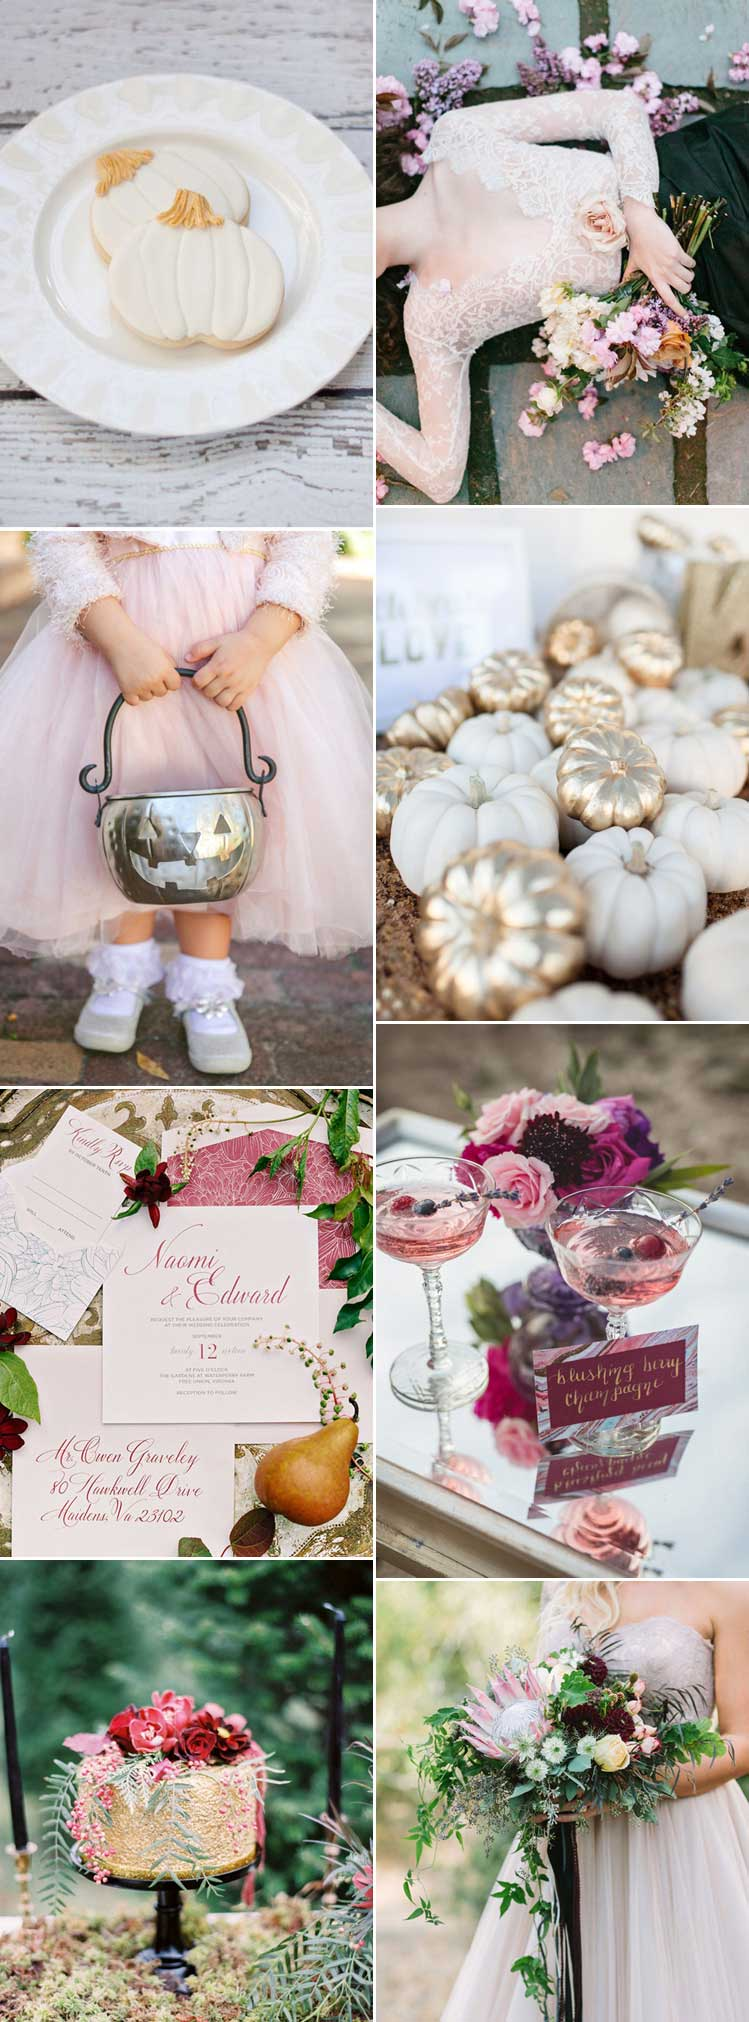 embrace a pretty pink halloween wedding theme